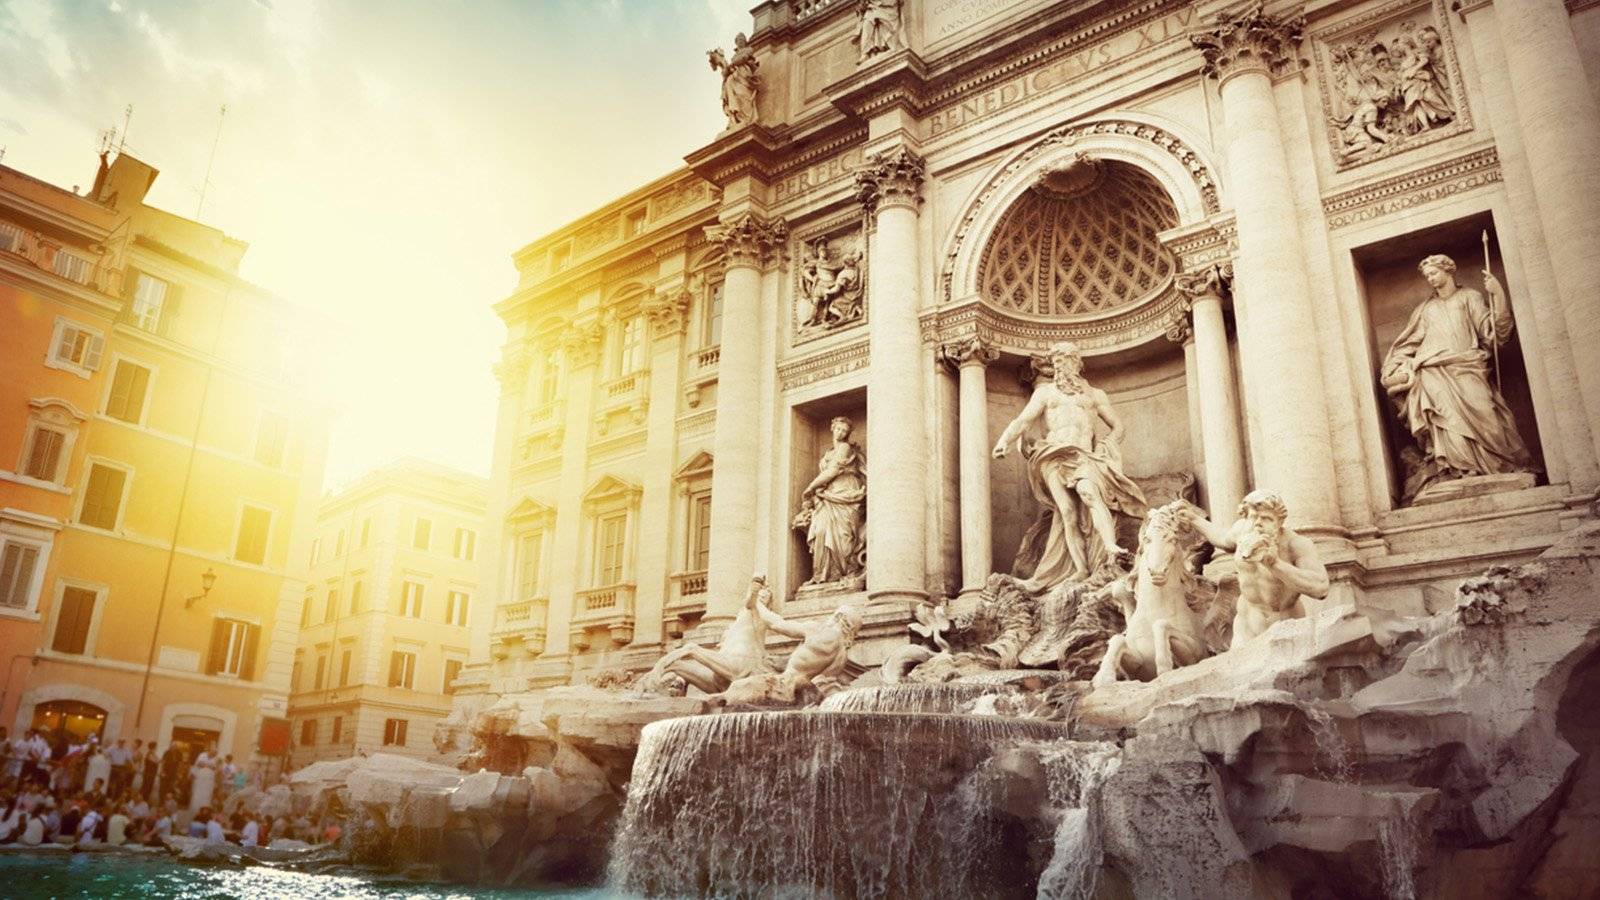 Make a Wish at the Trevi Fountain